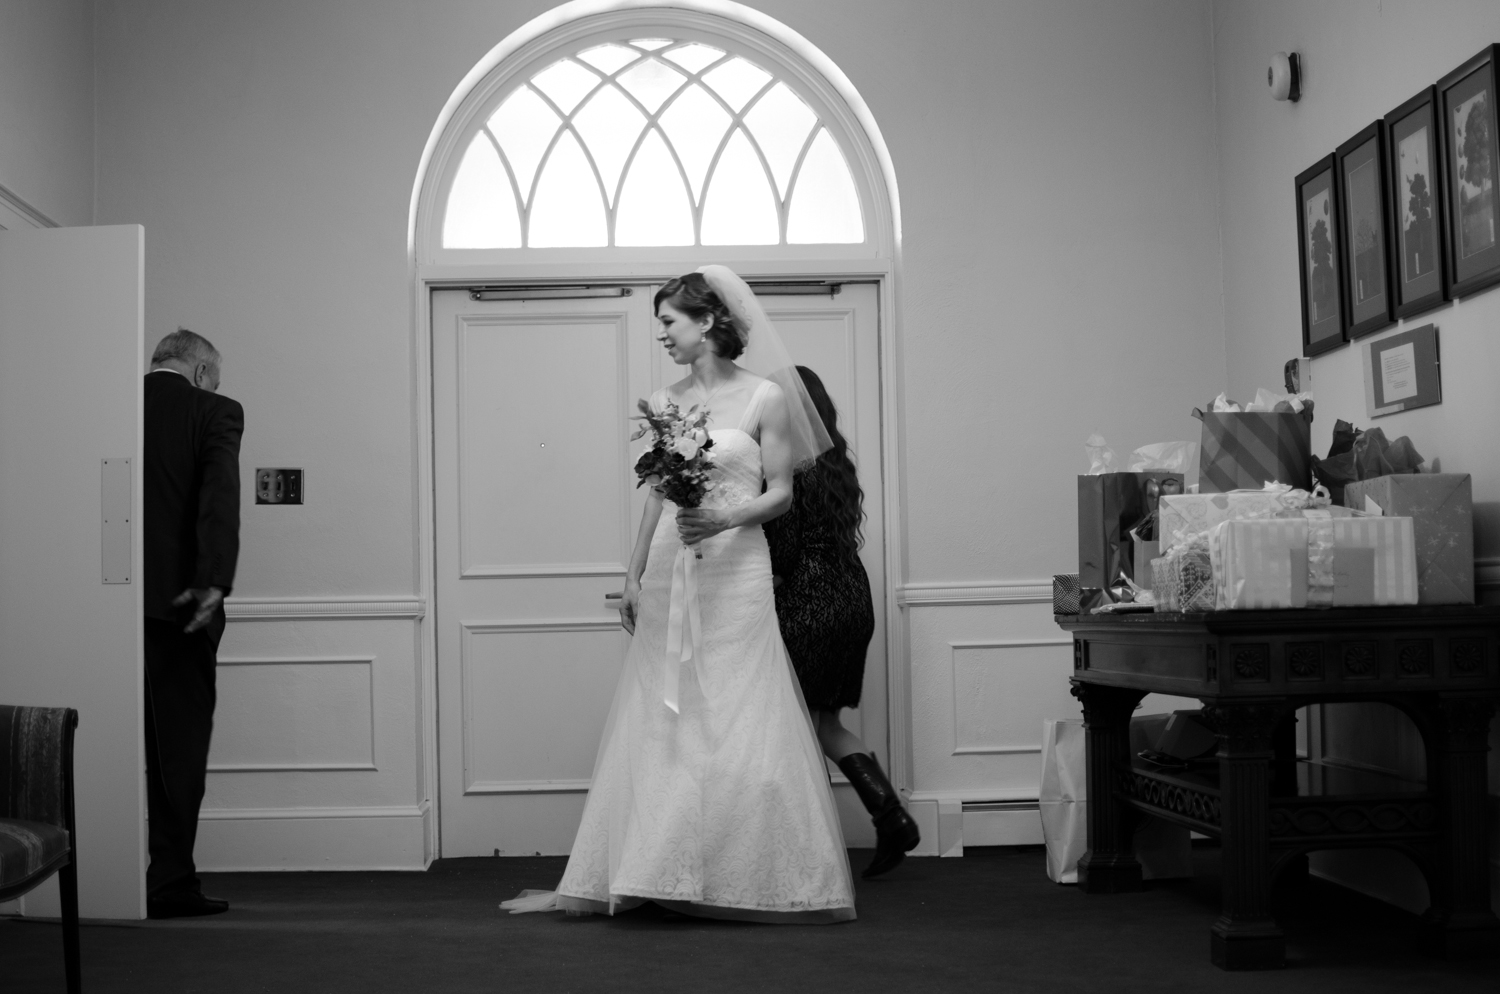 Photos by Catherine Siler and http://www.stephanieeileenphotography.com